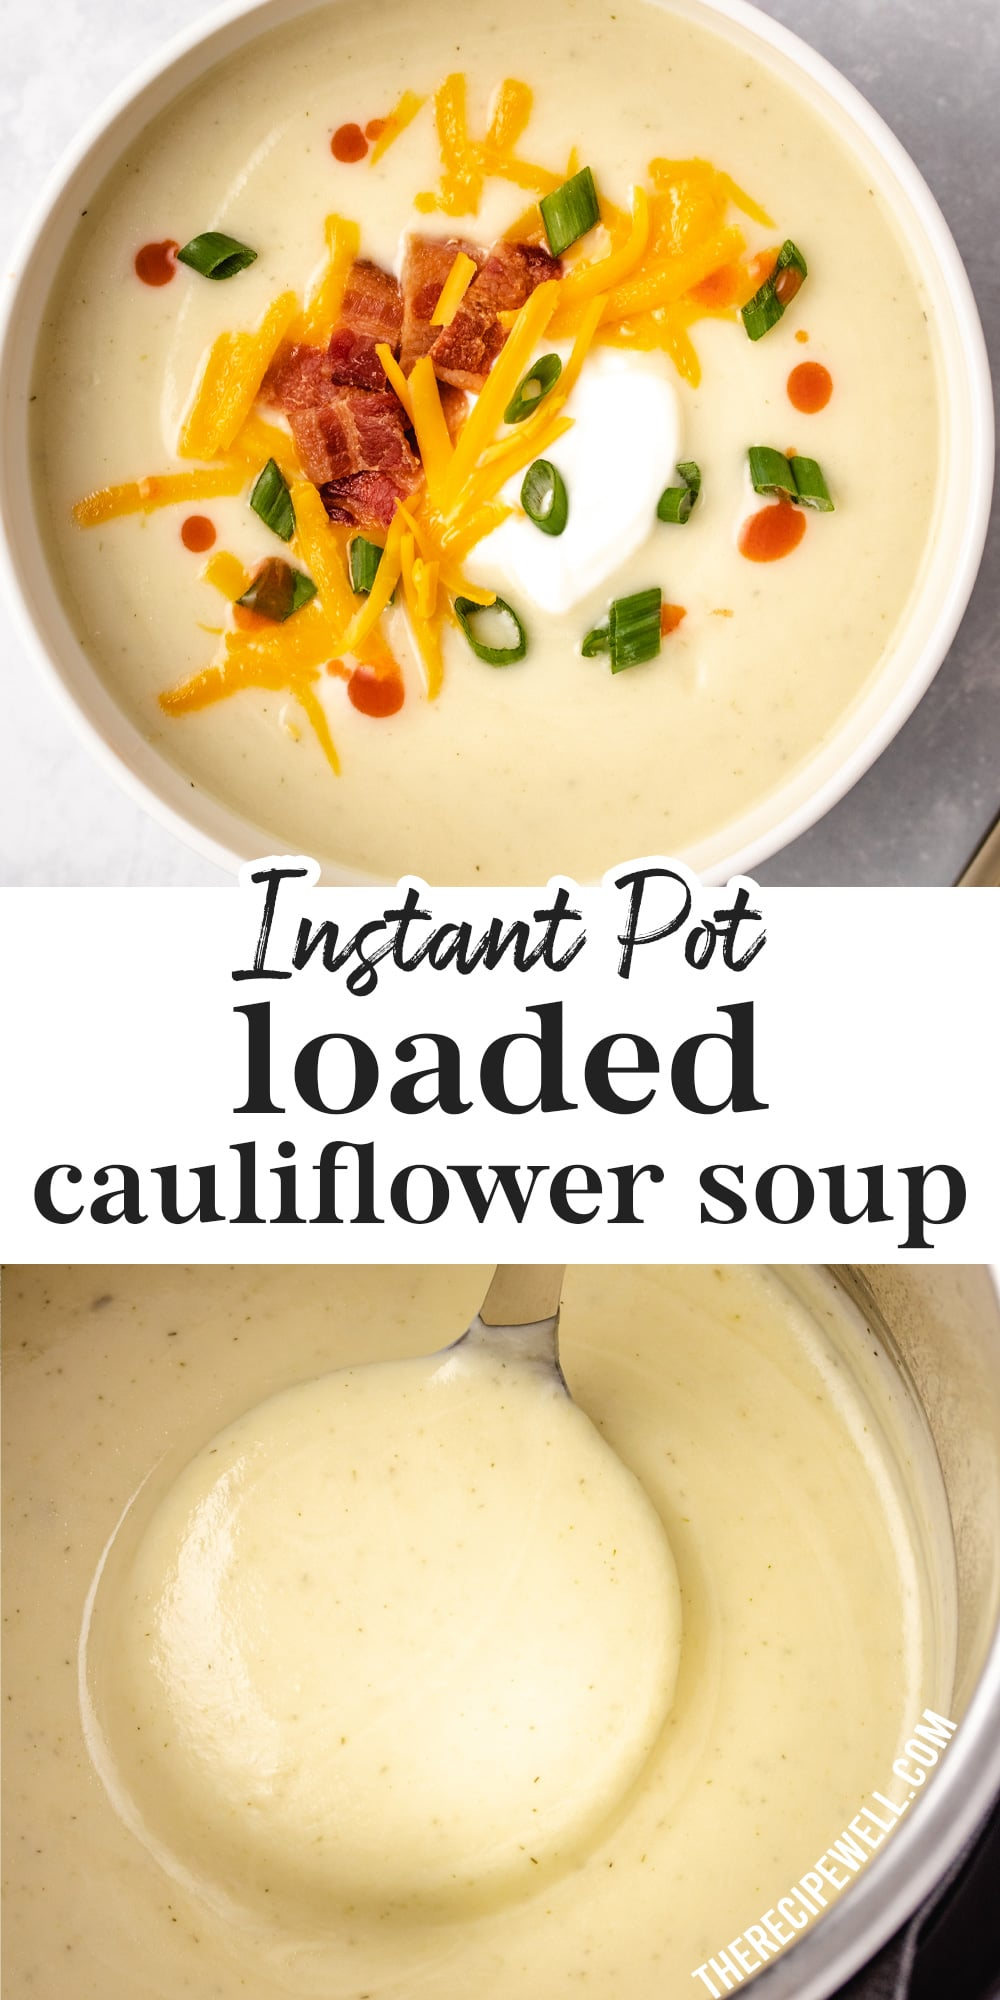 Instant Pot Loaded Cauliflower Soup is incredibly creamy and full of savoury flavour. Customize it with your favourite toppings! Vegetarian option and naturally gluten free.  via @therecipewell